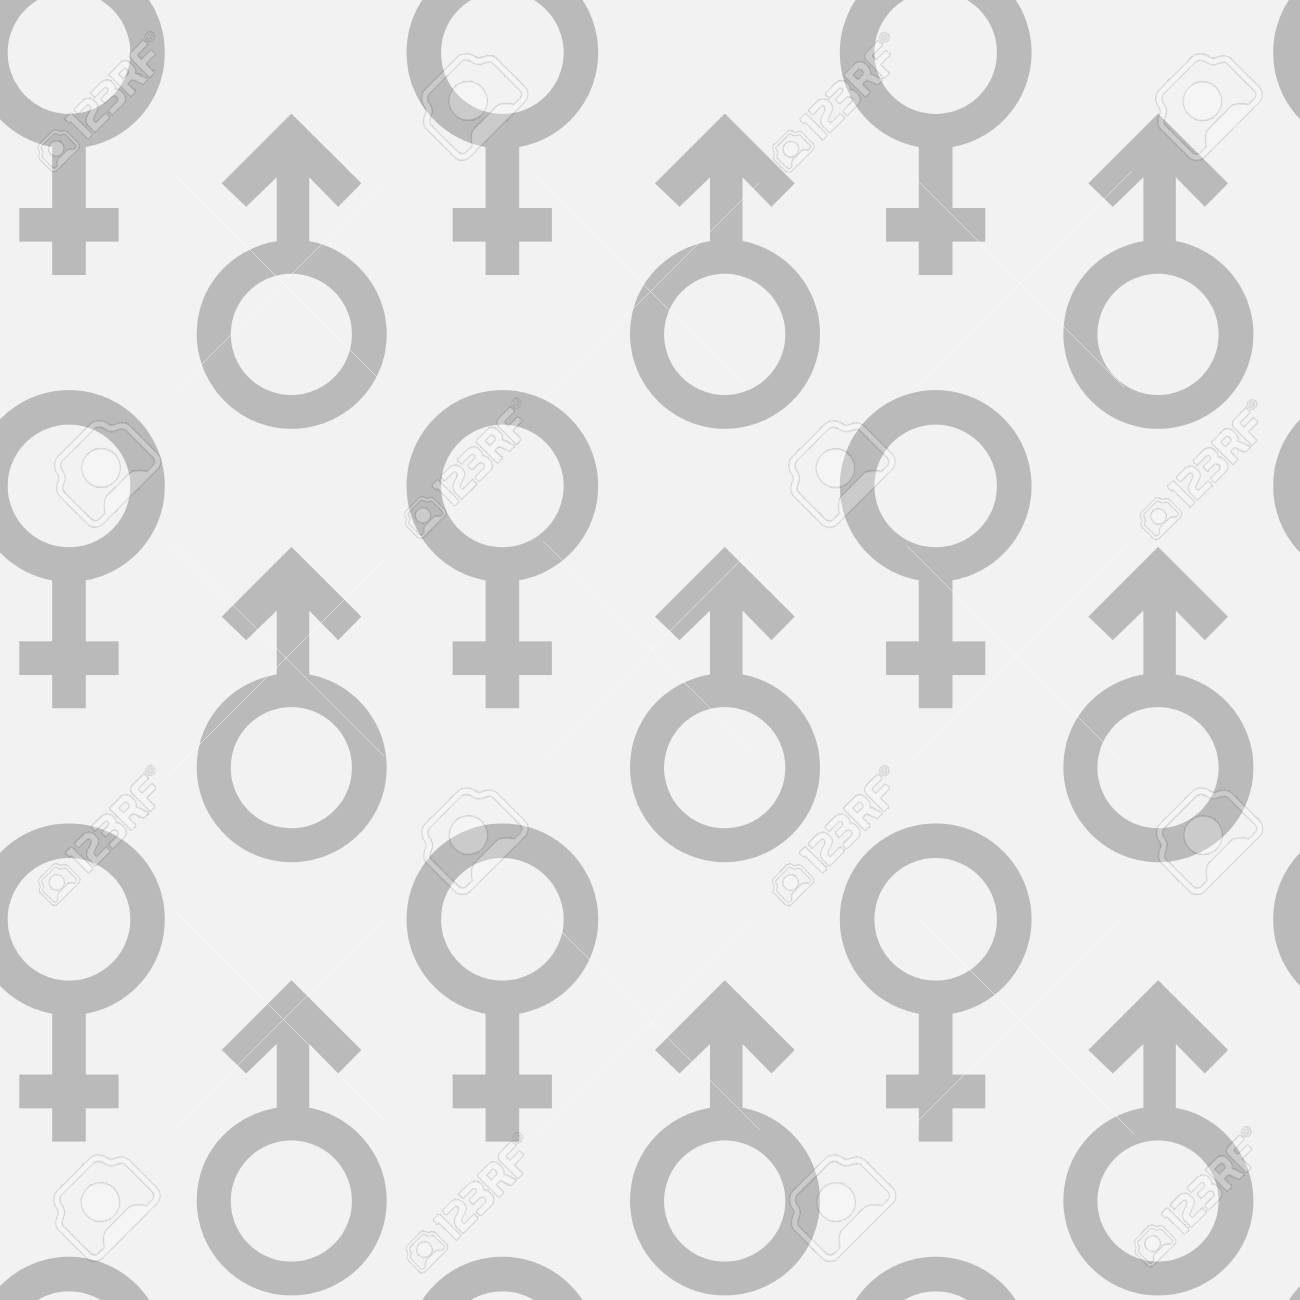 Seamless Pattern Of Grey Male And Female Gender Symbols On White